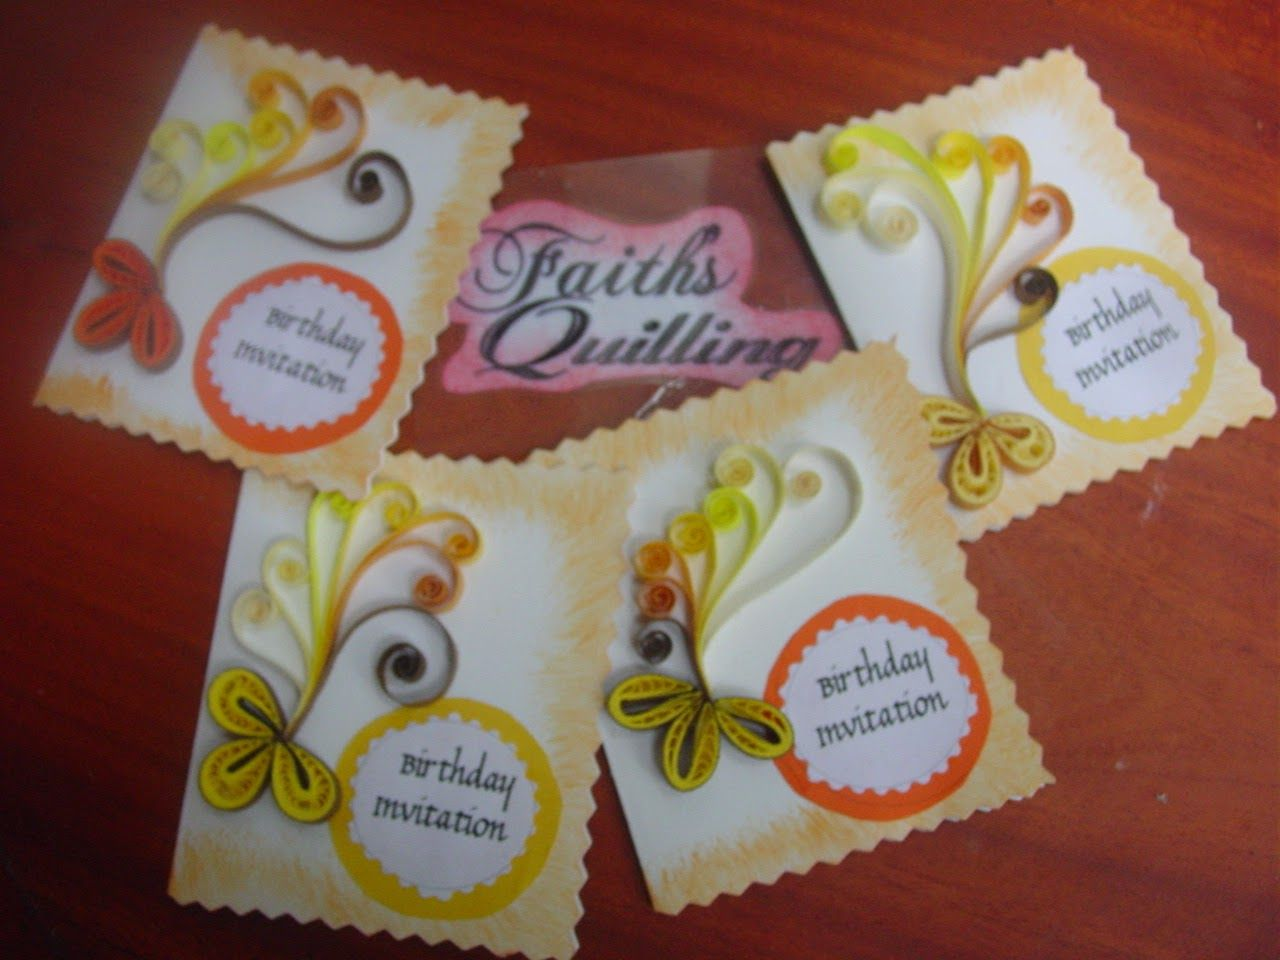 Faiths quilling birthday invitation cards projects to try faiths quilling birthday invitation cards stopboris Choice Image